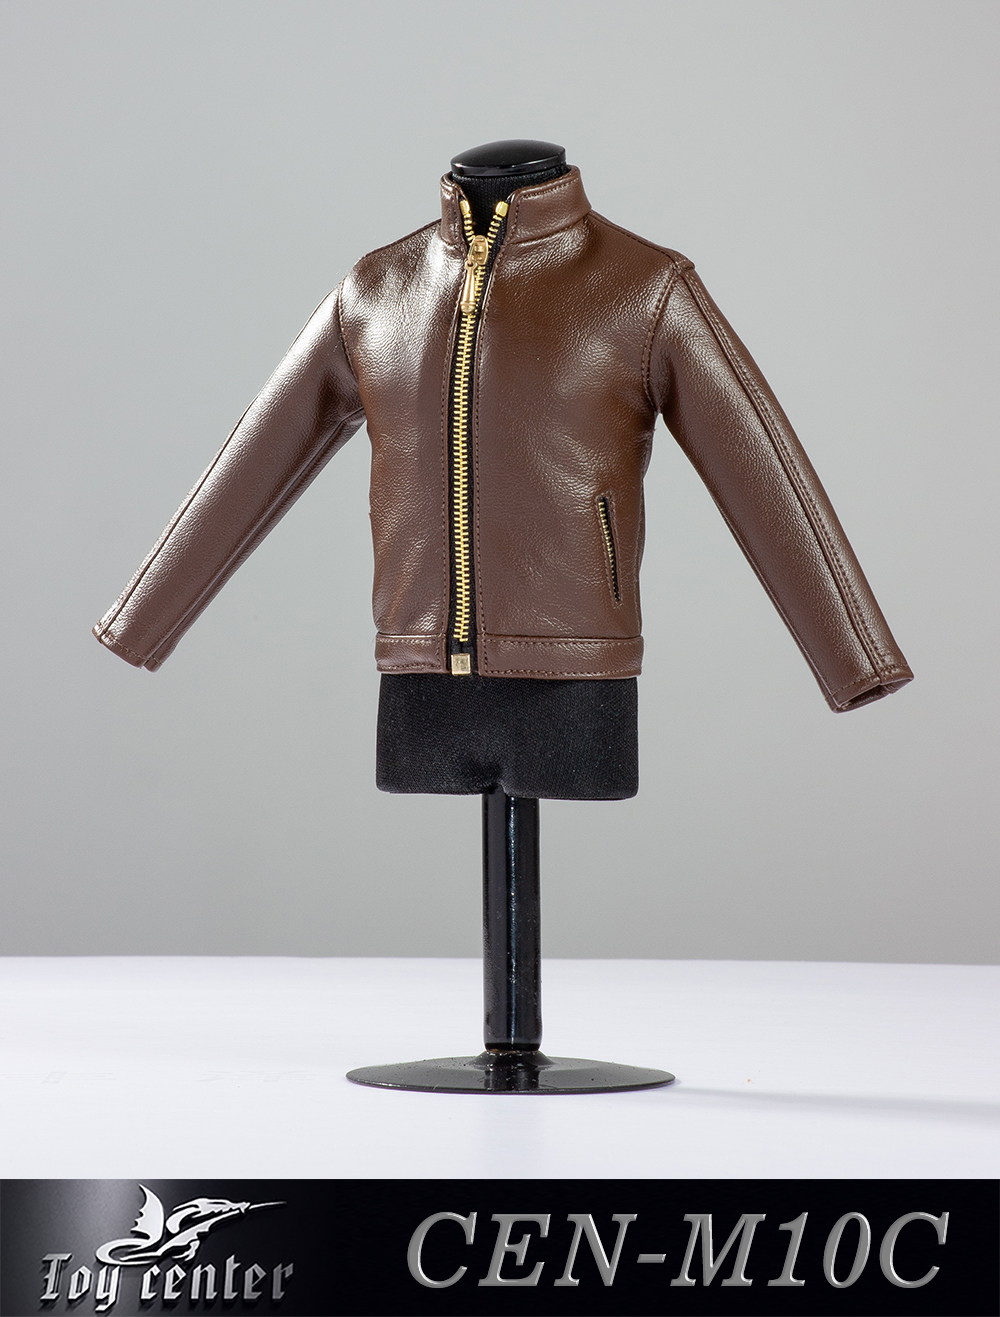 clothes - NEW PRODUCT: Toy center: 1/6 US team trend leather suit - a total of three colors A / B / C (CEN-M10 #) 13143610